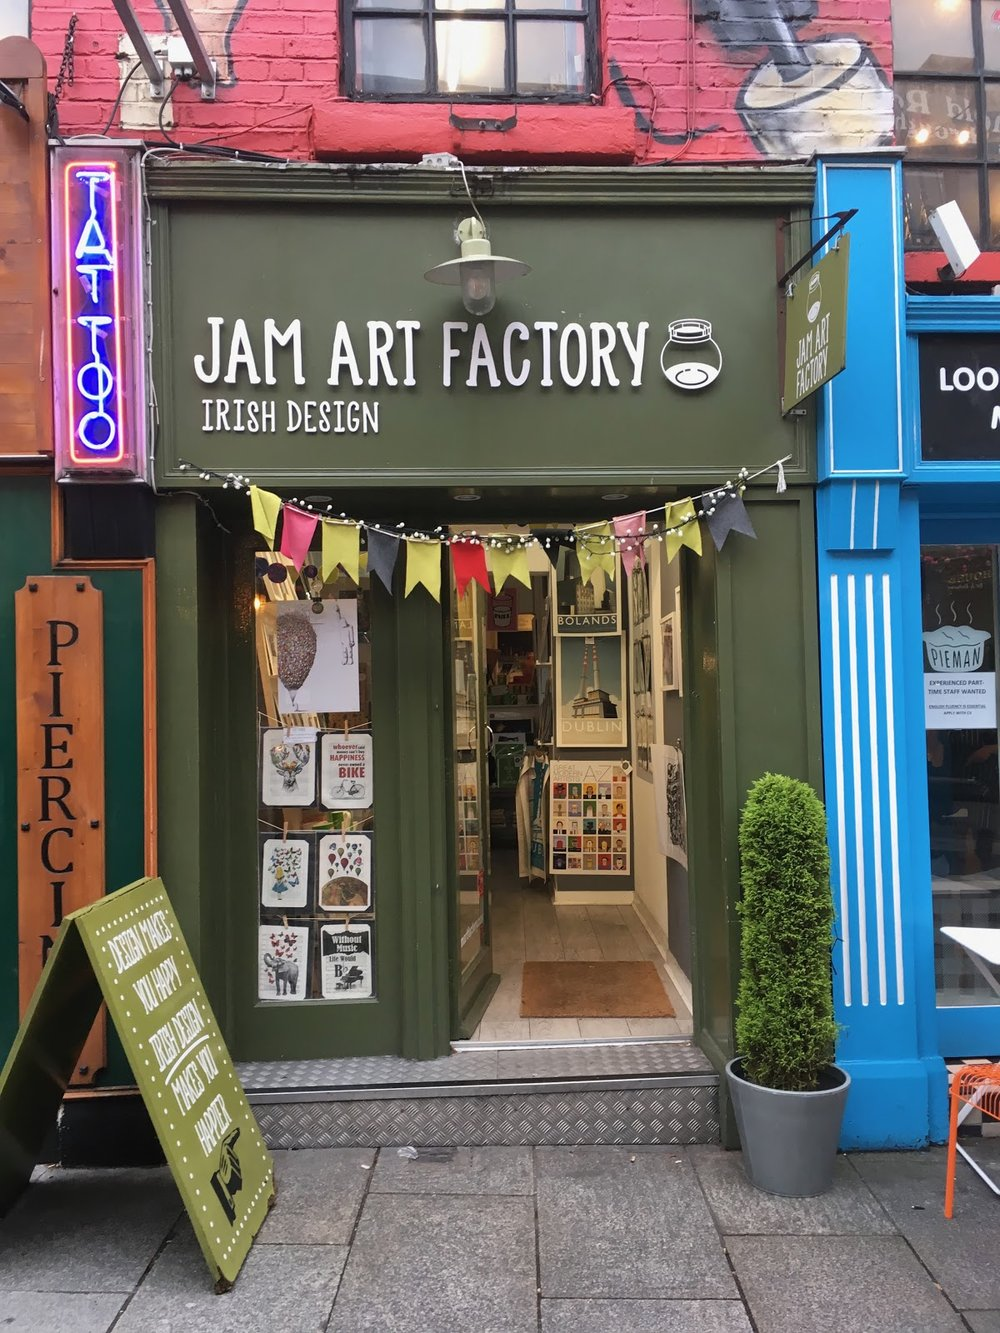 Unfortunately, it does not actually sell art made out of jam… but a cute shop nonetheless.